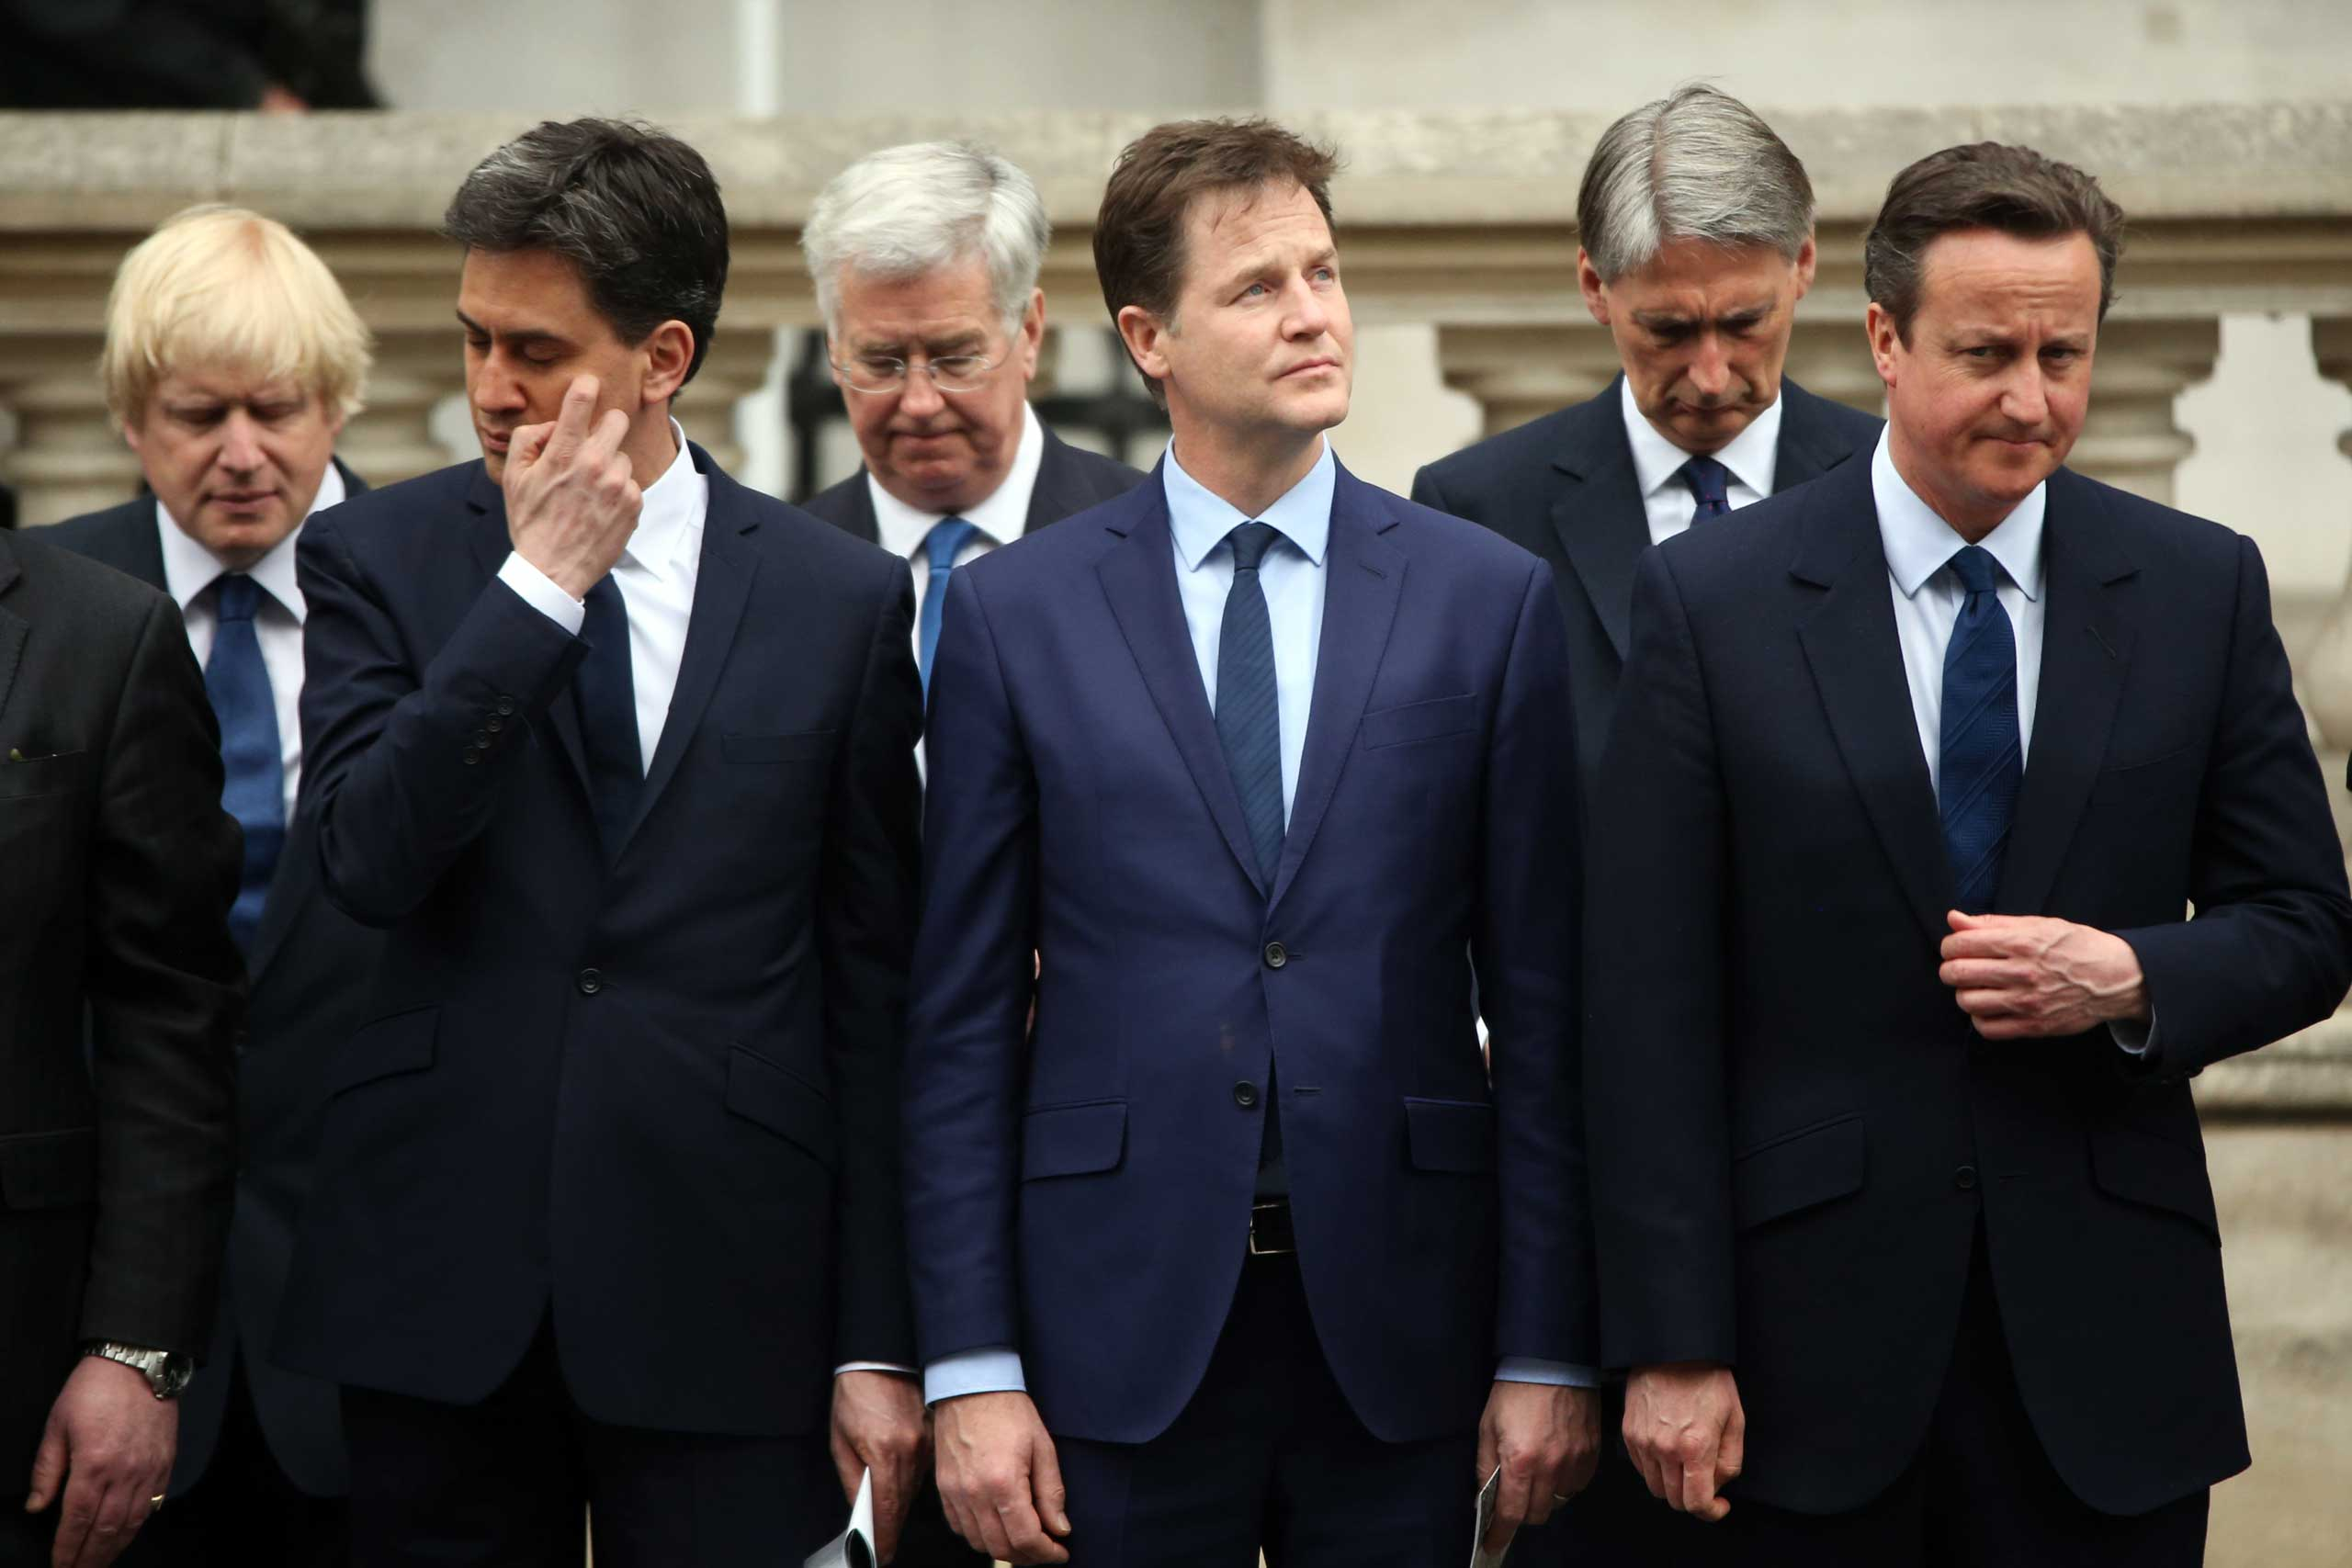 Labour Party leader Ed Miliband, Liberal Democrat leader Nick Clegg and Prime Minister David Cameron stand during a tribute at the Cenotaph to begin three days of national commemorations to mark the 70th anniversary of VE Day on May 8, 2015 in London.